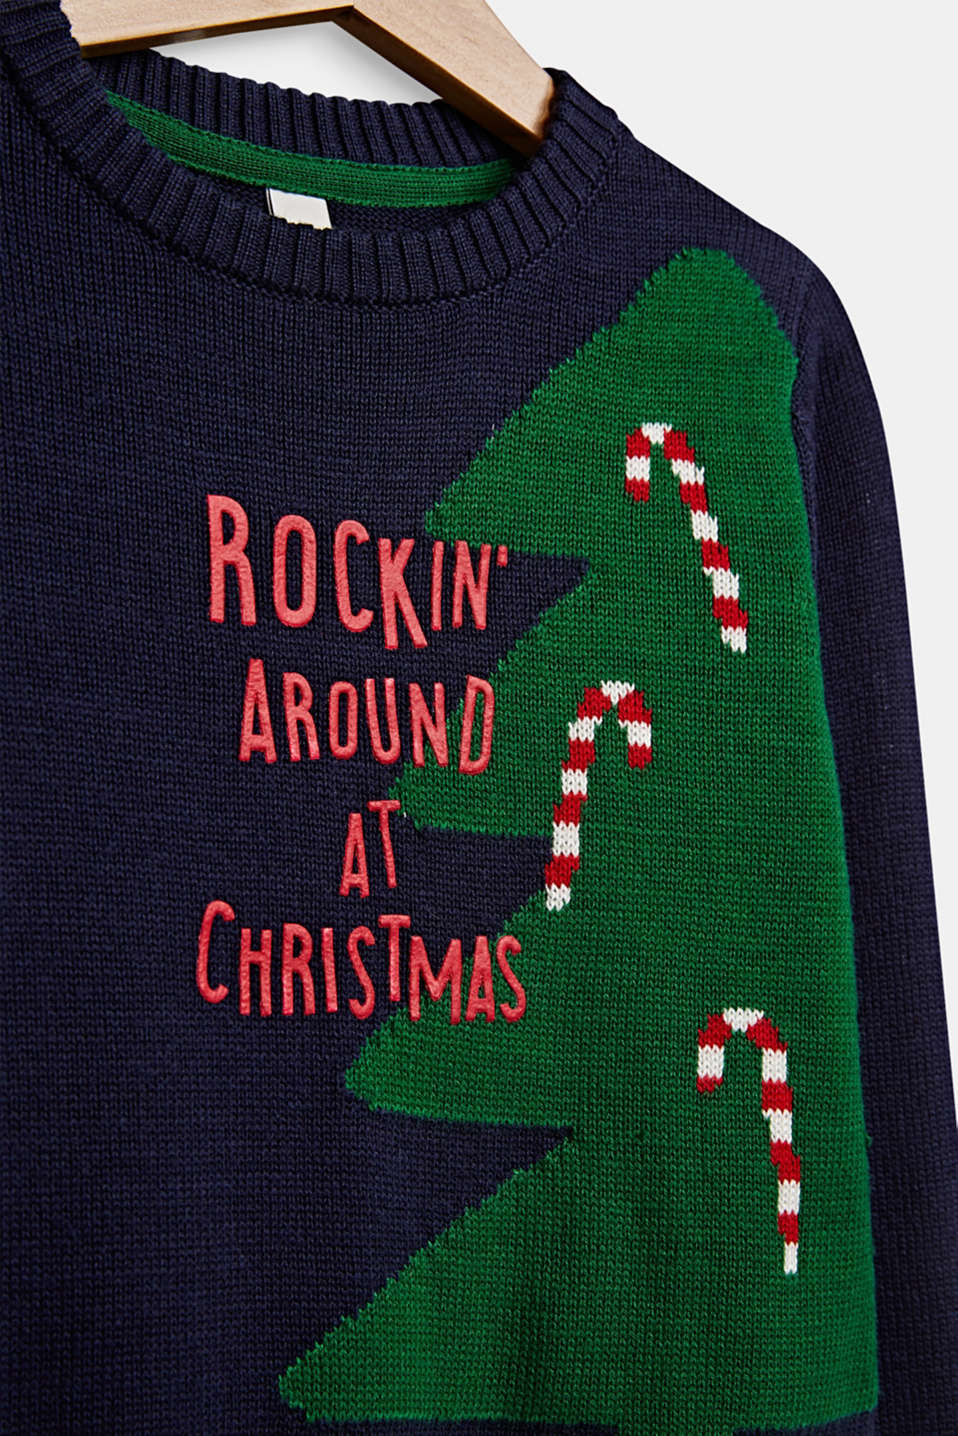 Xmas jumper with a jacquard motif, NAVY BLUE, detail image number 2